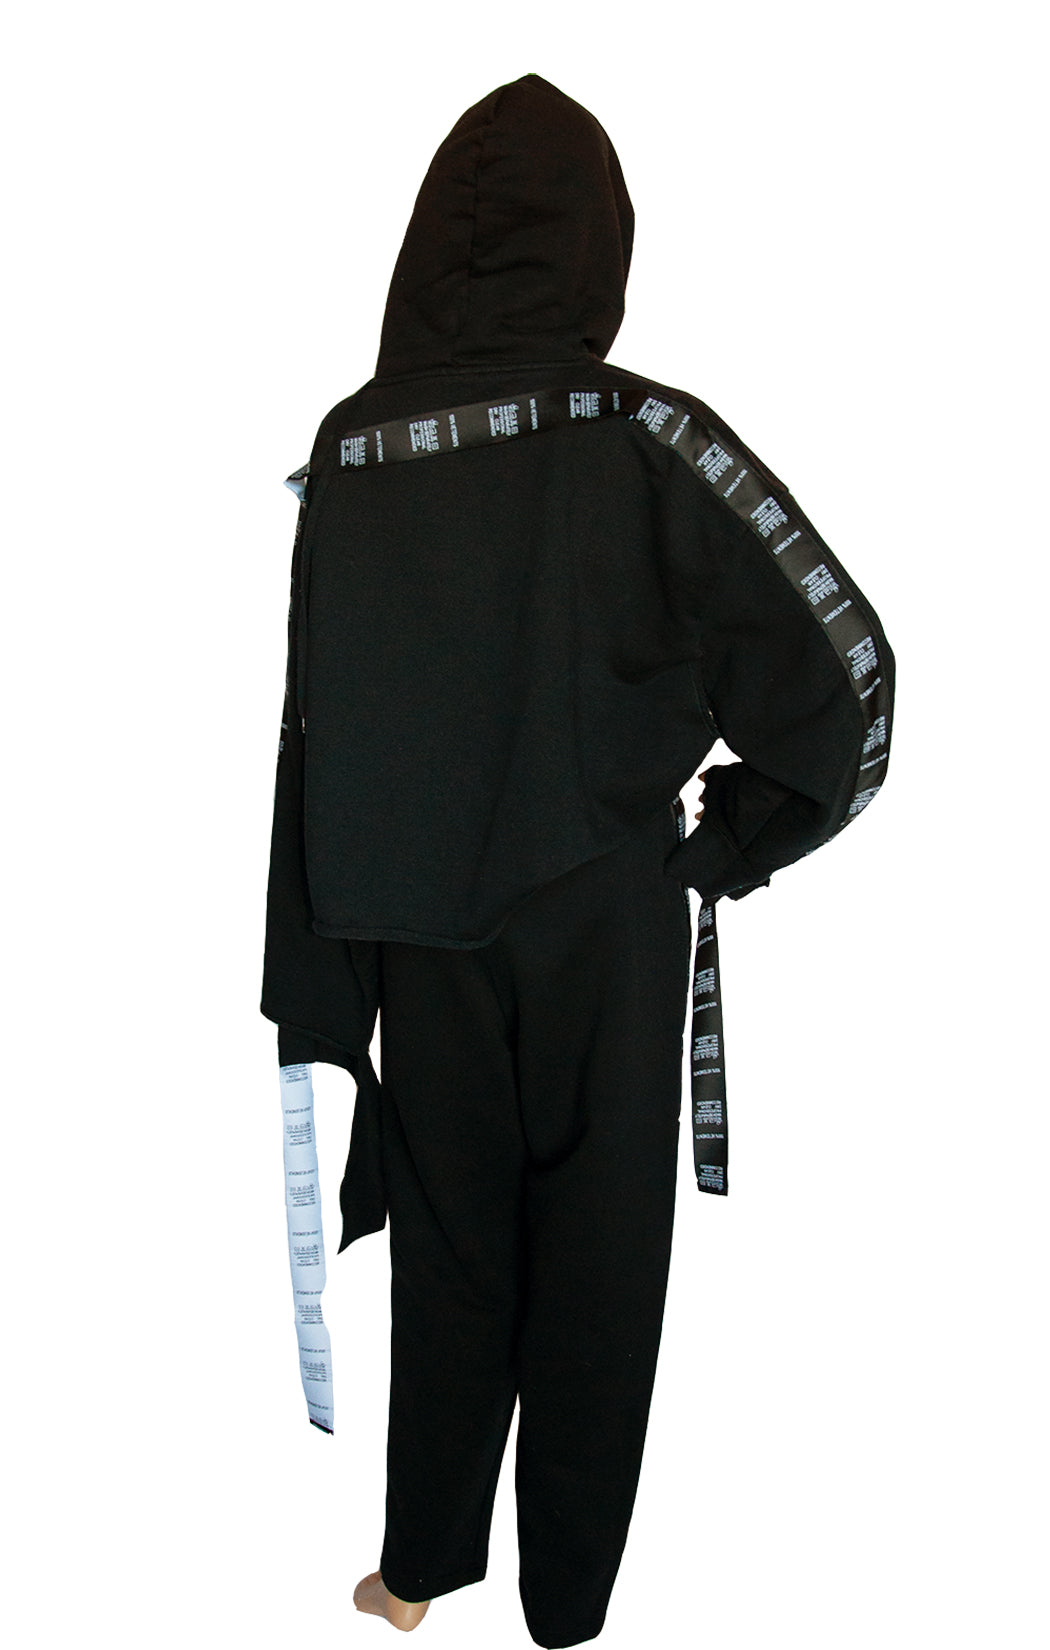 Back view of VETEMENTS Black Sweatsuit Hoodie